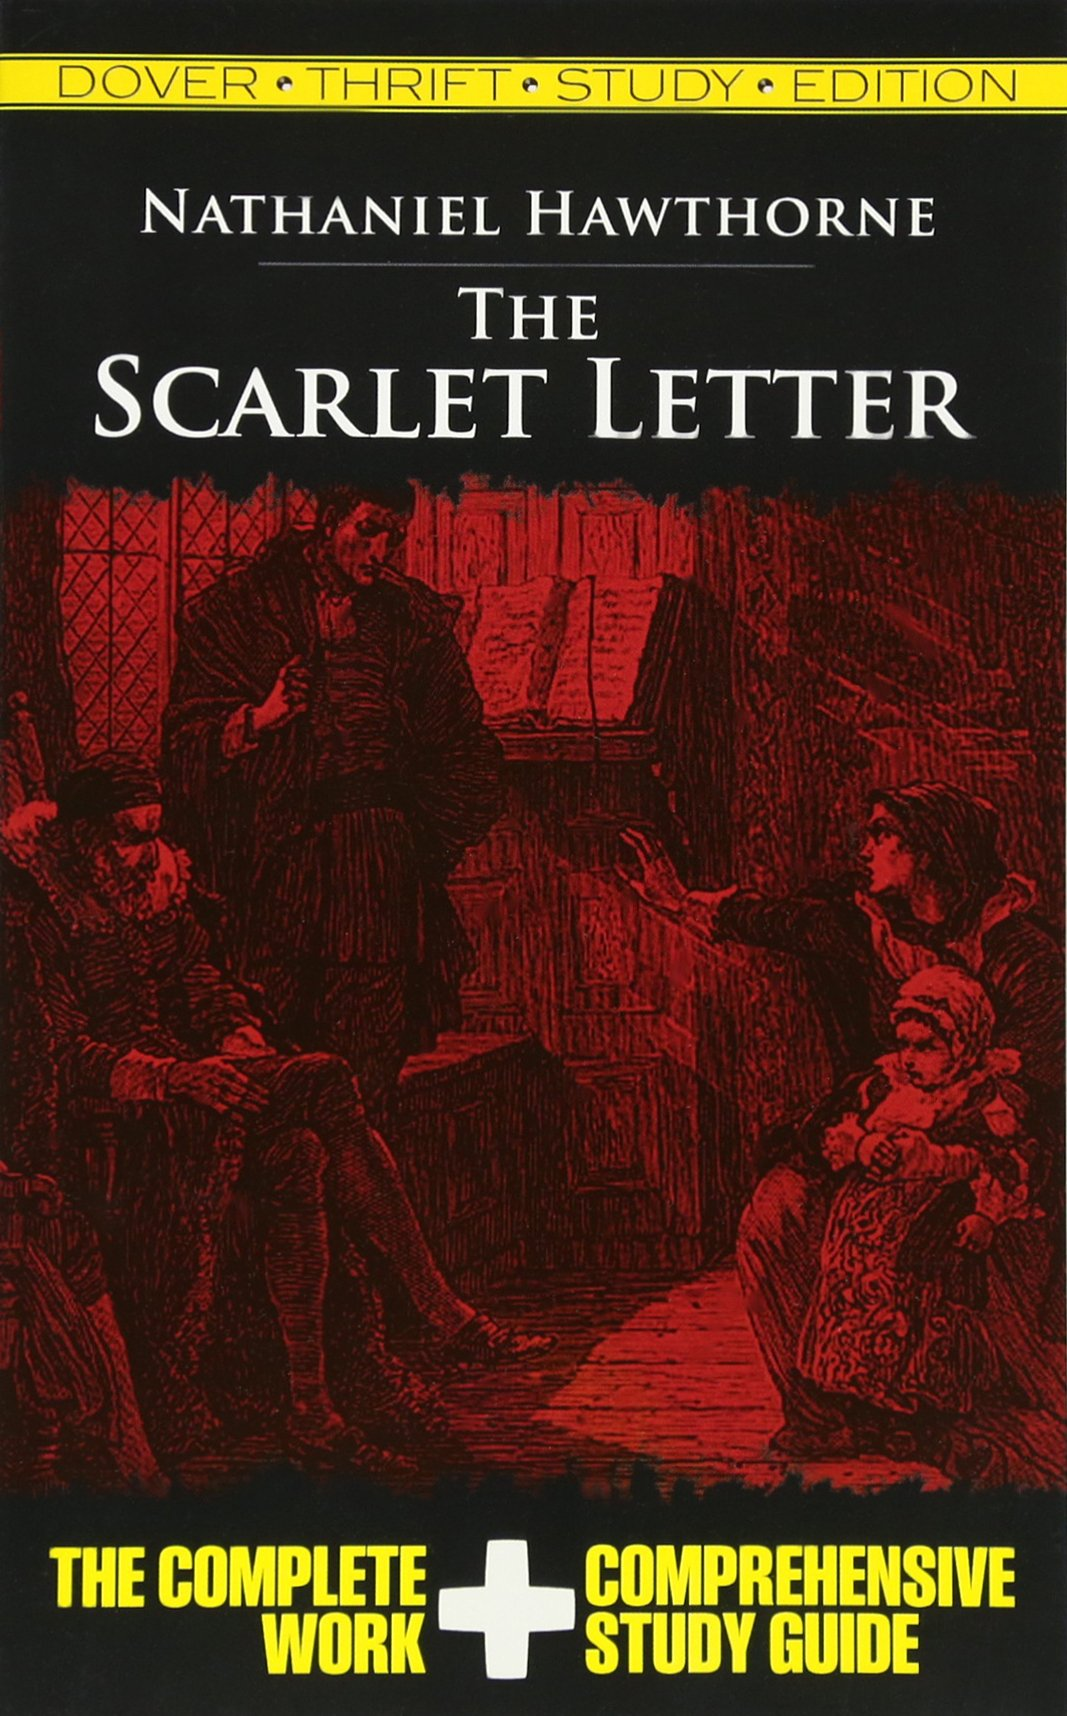 alienation scarlet letter nathaniel hawthorne (click the themes infographic to download) puritan society in the scarlet letter seems just as judgmental and cruel as any school cafeteria make one tiny misstep—spill your food show up to school wearing the wrong kind of backpack—and you're an outcast, with the name-calling and ostracization to prove it.